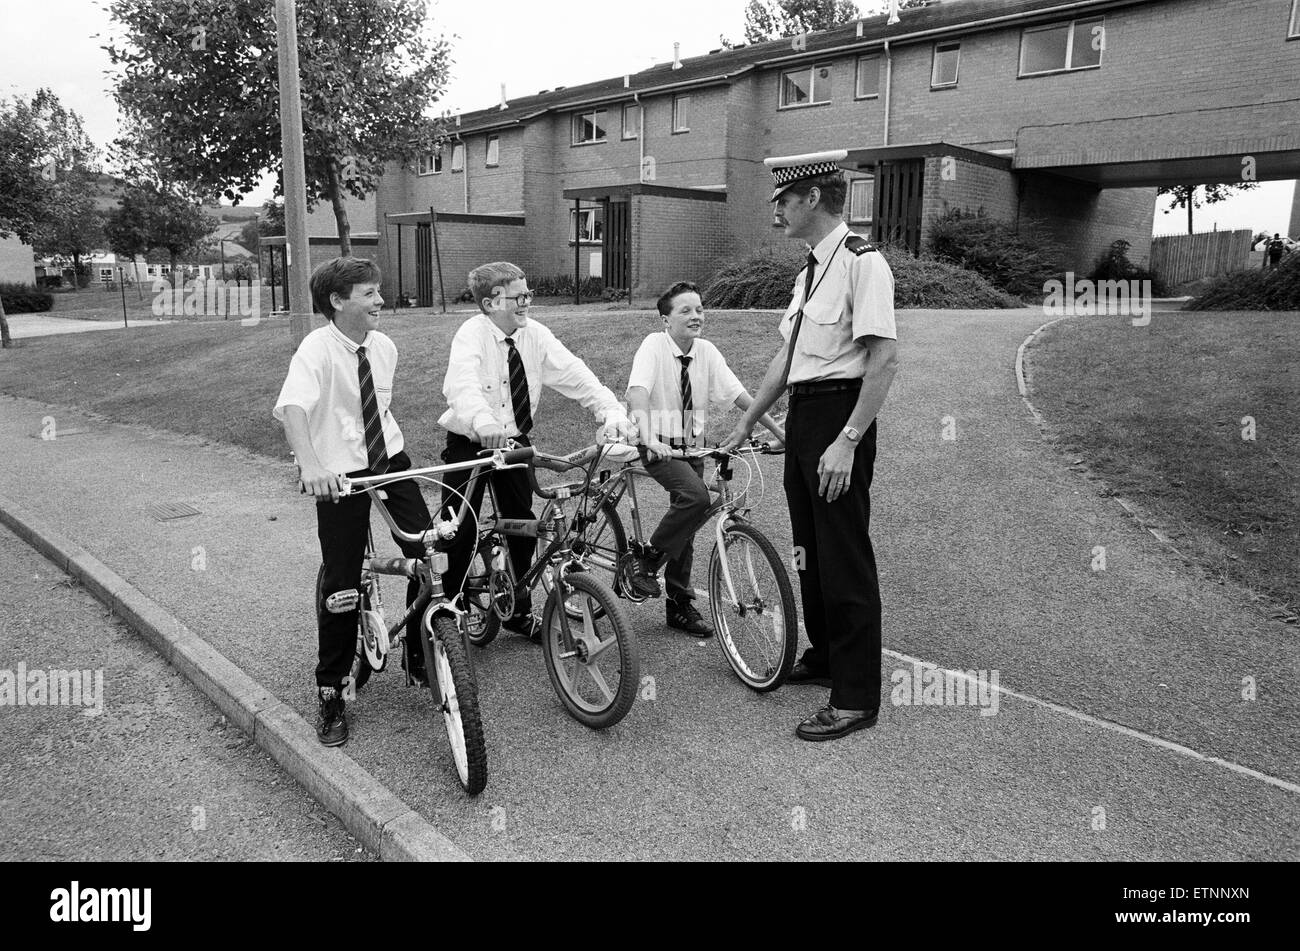 PC Alan Laurie, Huddersfield accident prevention officer, warns against cycling on pavements, 19th September 1991. - Stock Image